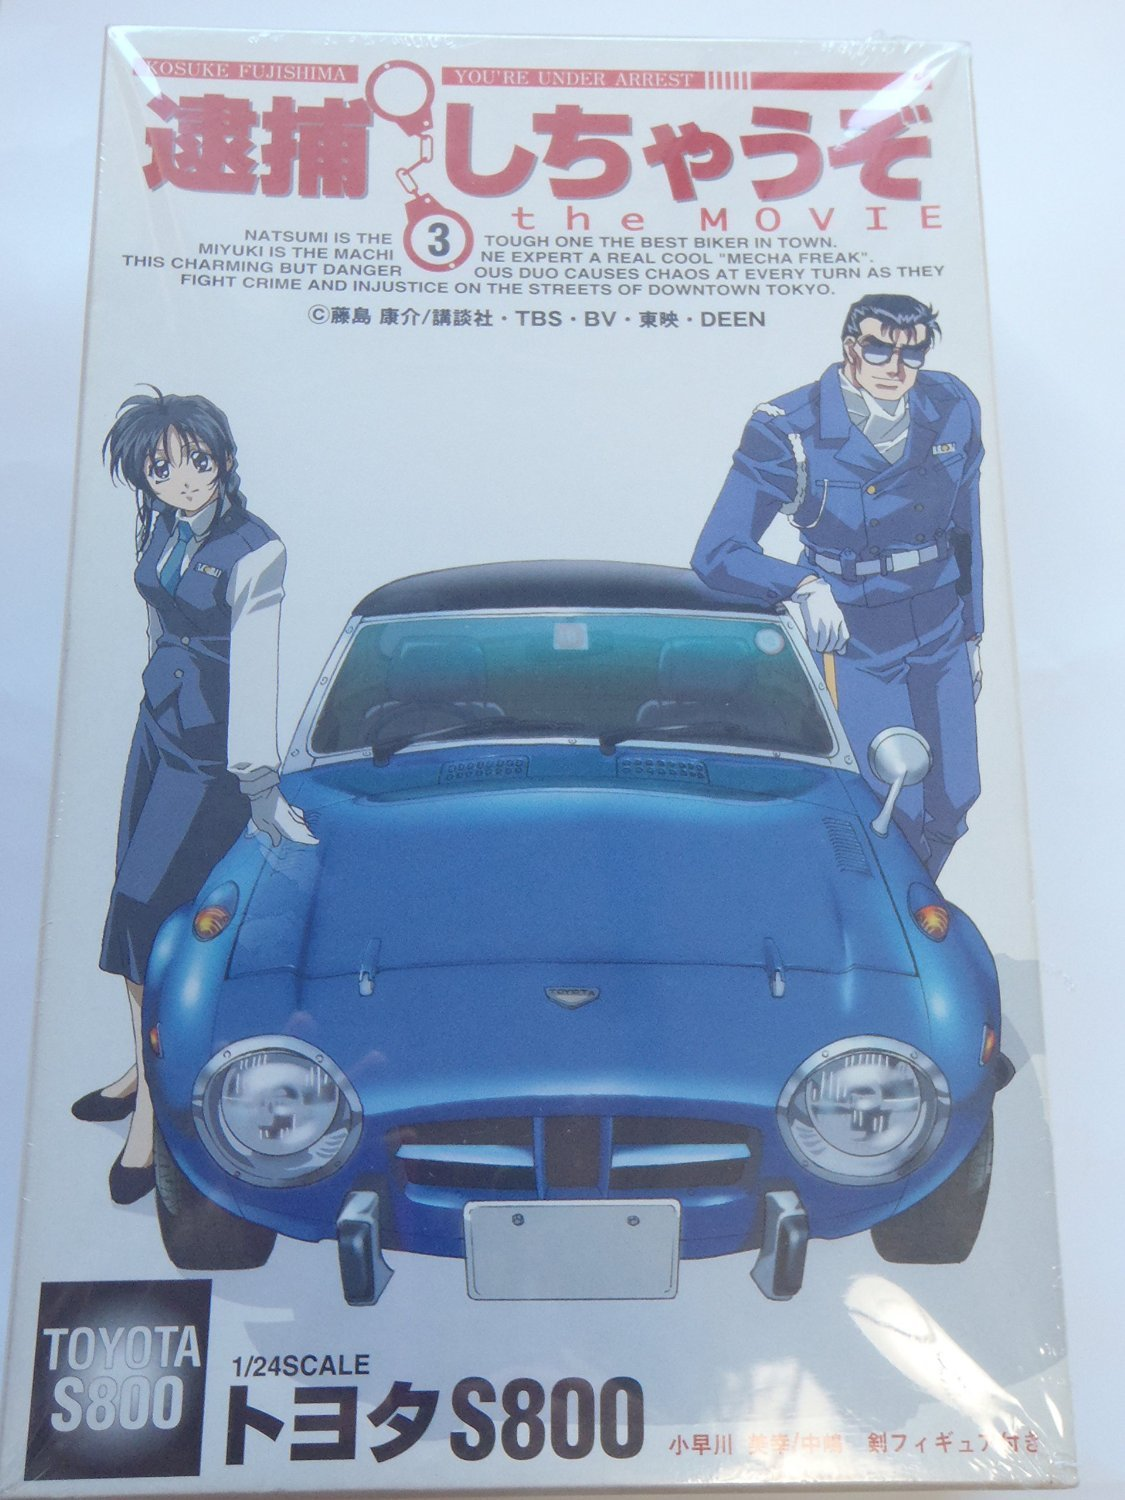 1/24 Fujimi You're Under Arrest the MOVIE Toyota S800 (Limited Edition) by Fujimi Model